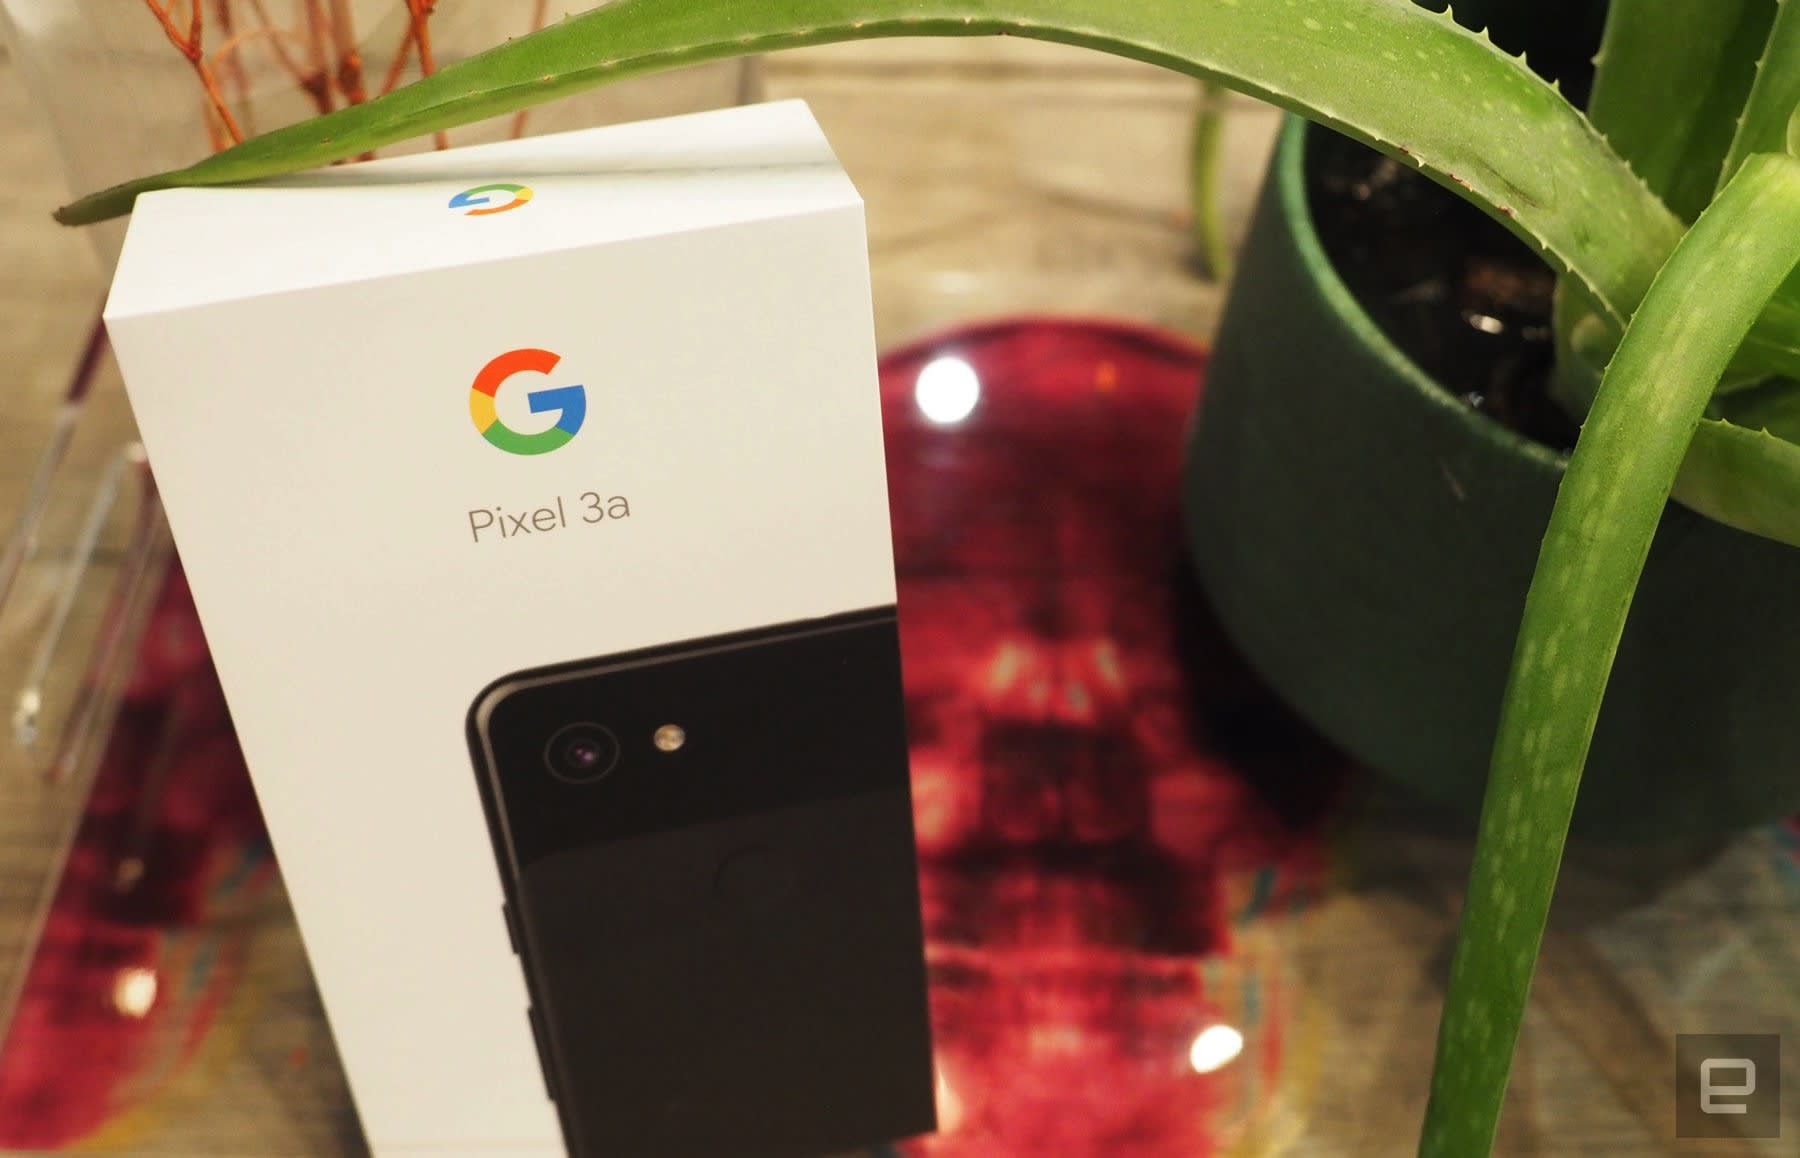 Engadget giveaway: Win a Google Pixel 3a courtesy of TurboTax!